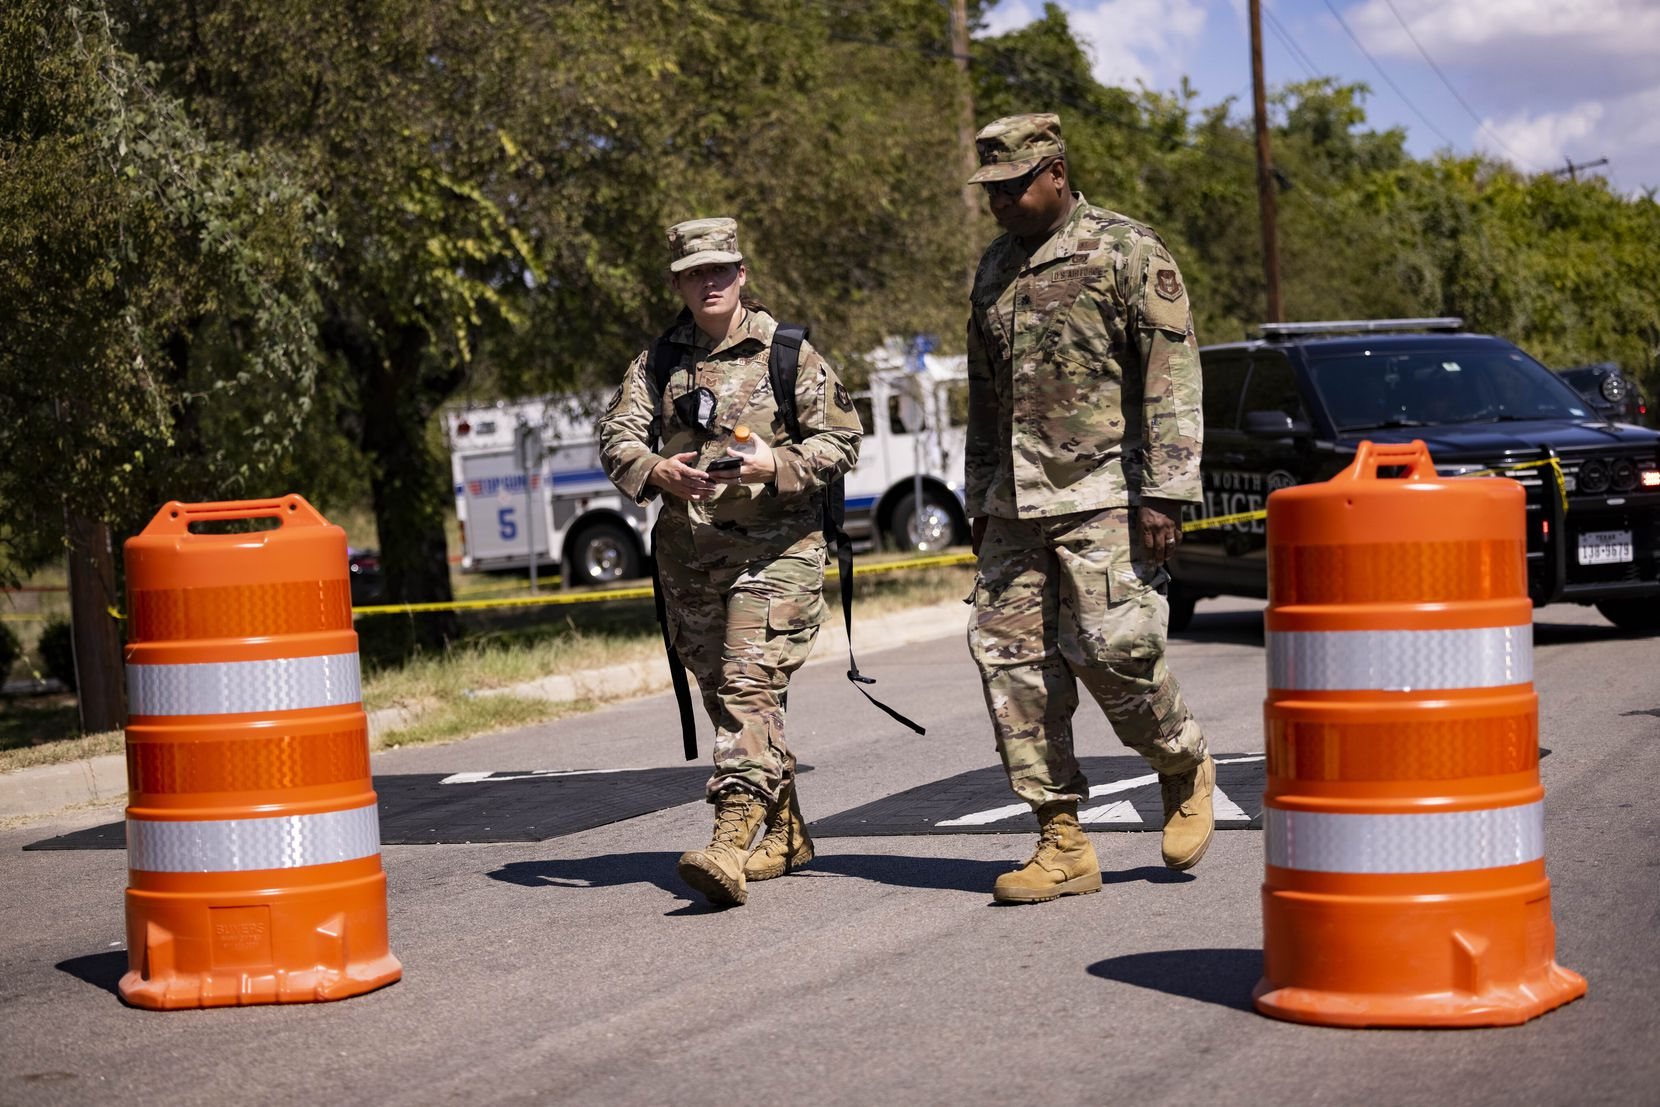 Members of the US Air Force leave the site where a military training aircraft crashed in a residential area on Sunday, Sept. 19, 2021, in Lake Worth. Two pilots were injured and three homes were damaged, officials said.